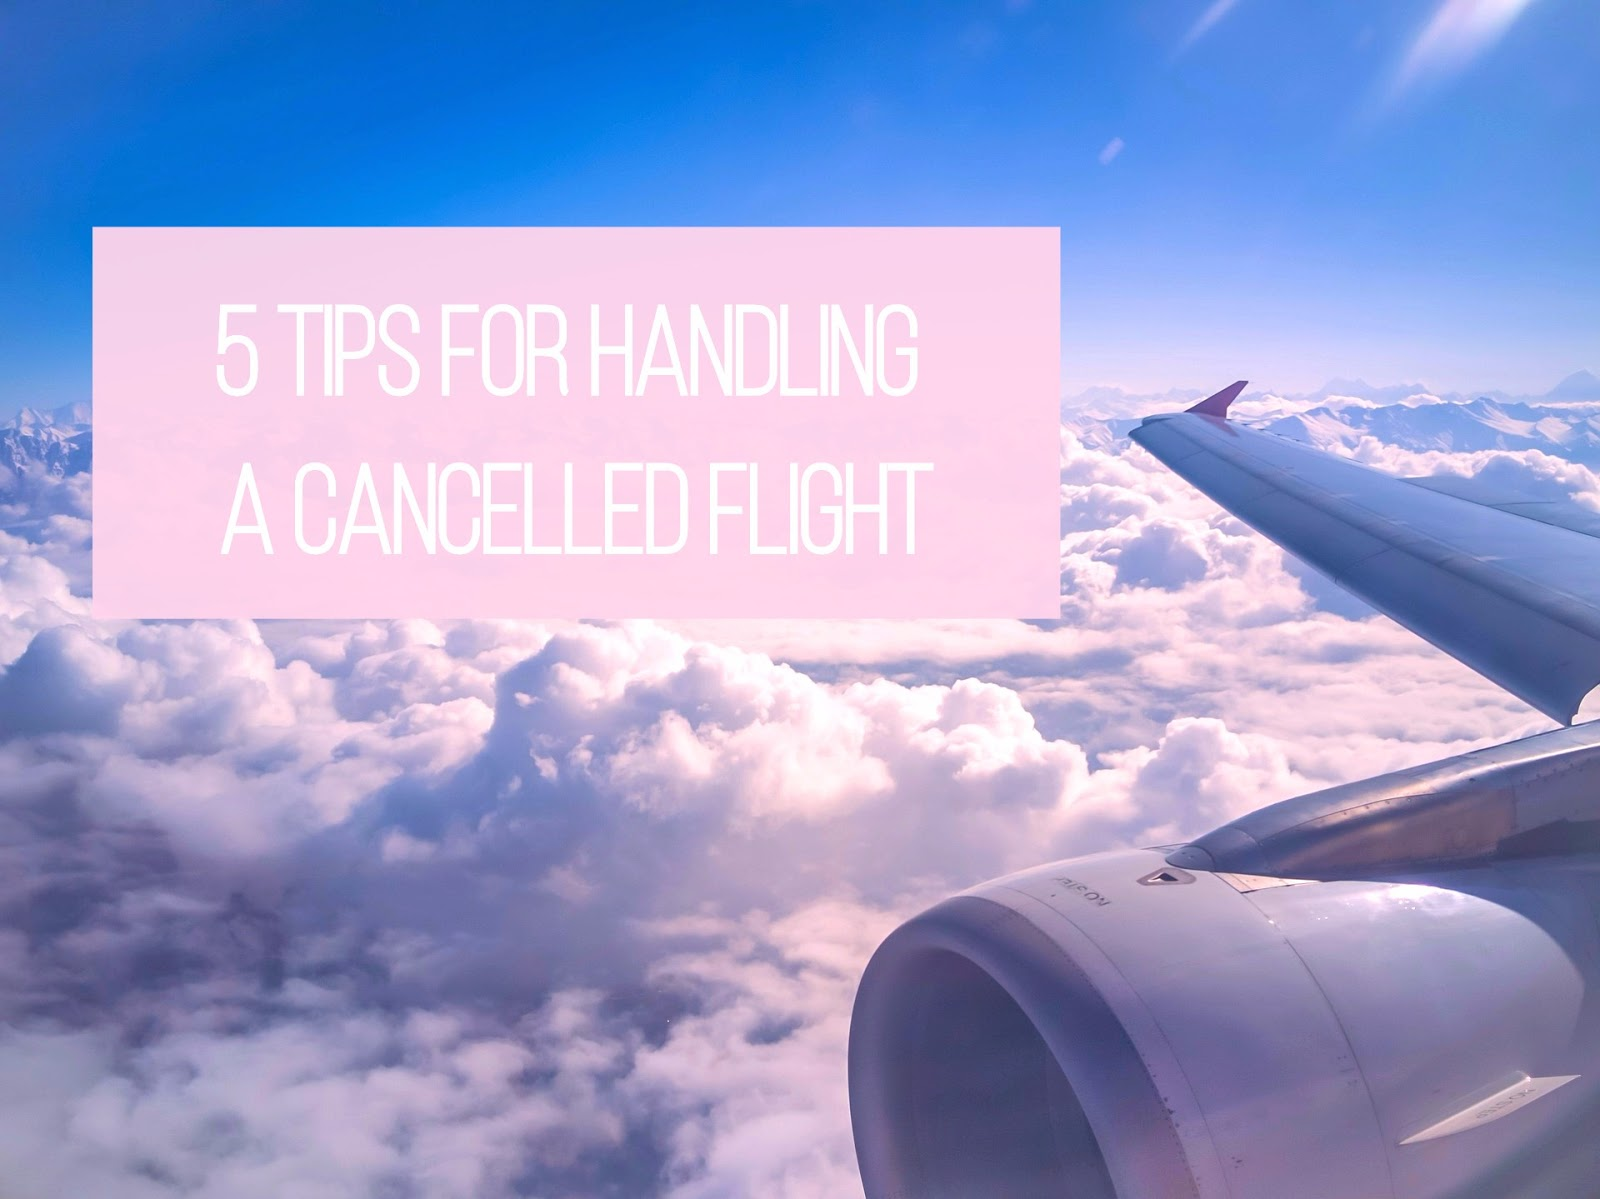 5 Tips For Handling A Cancelled Flight